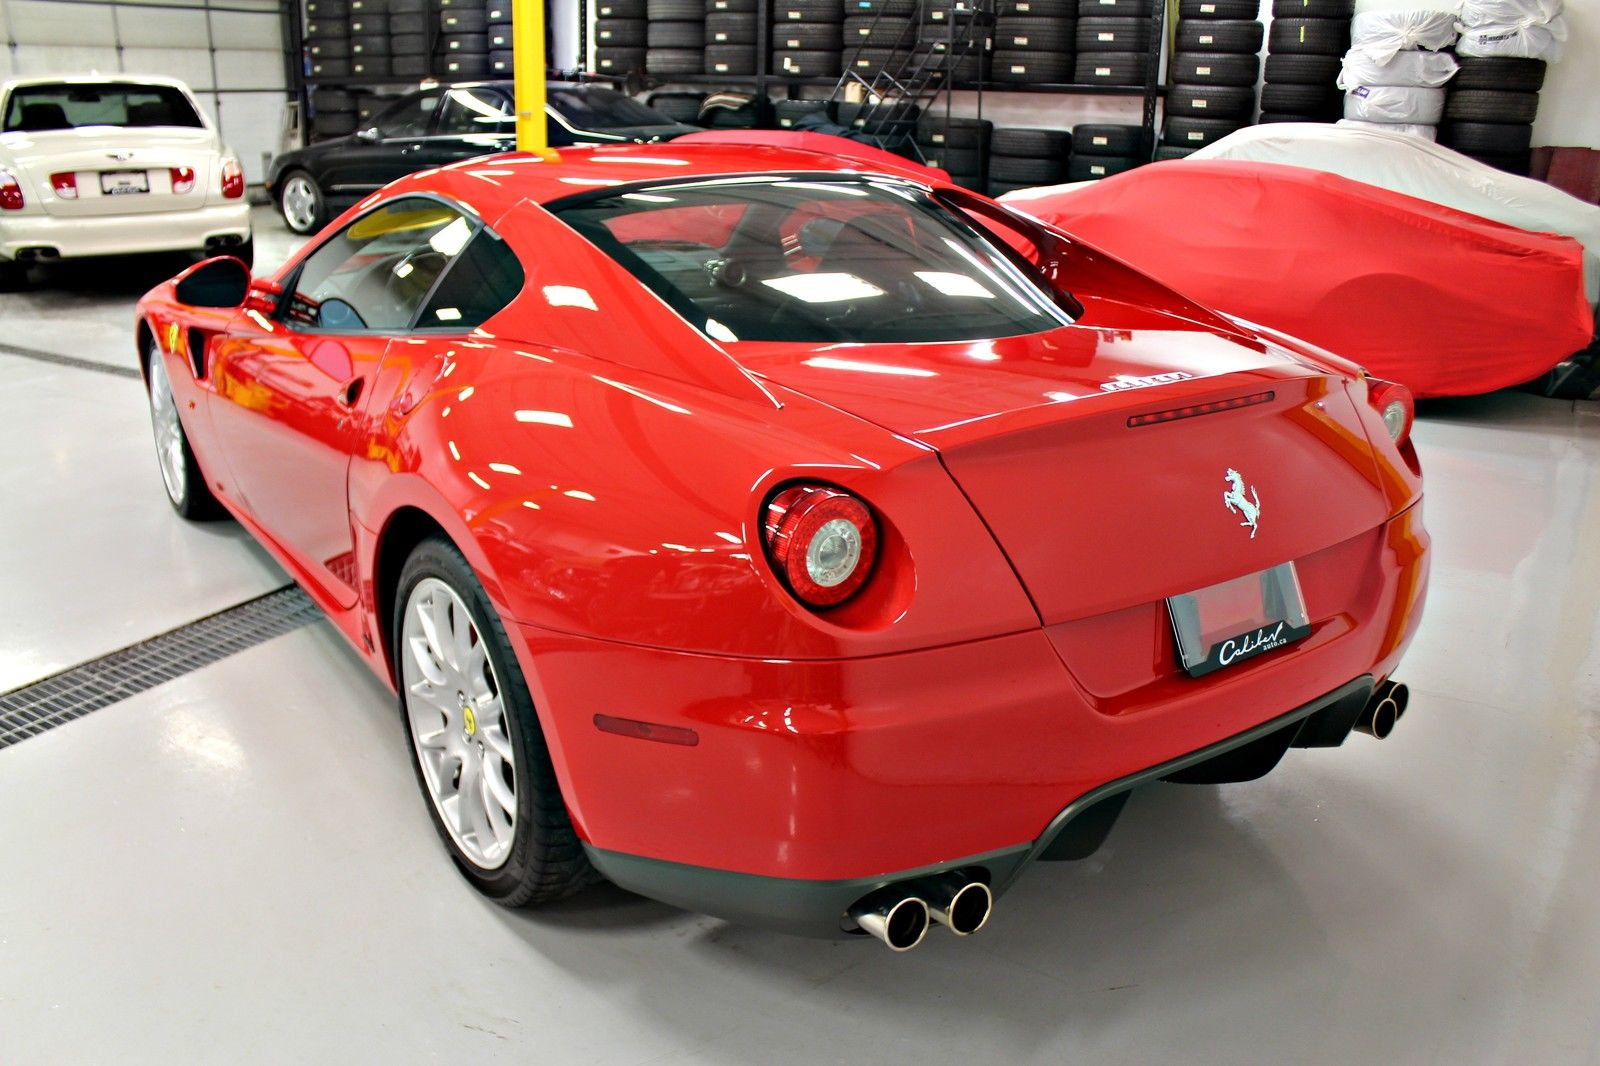 Manual_Ferrari_599_GTB_Fiorano_19